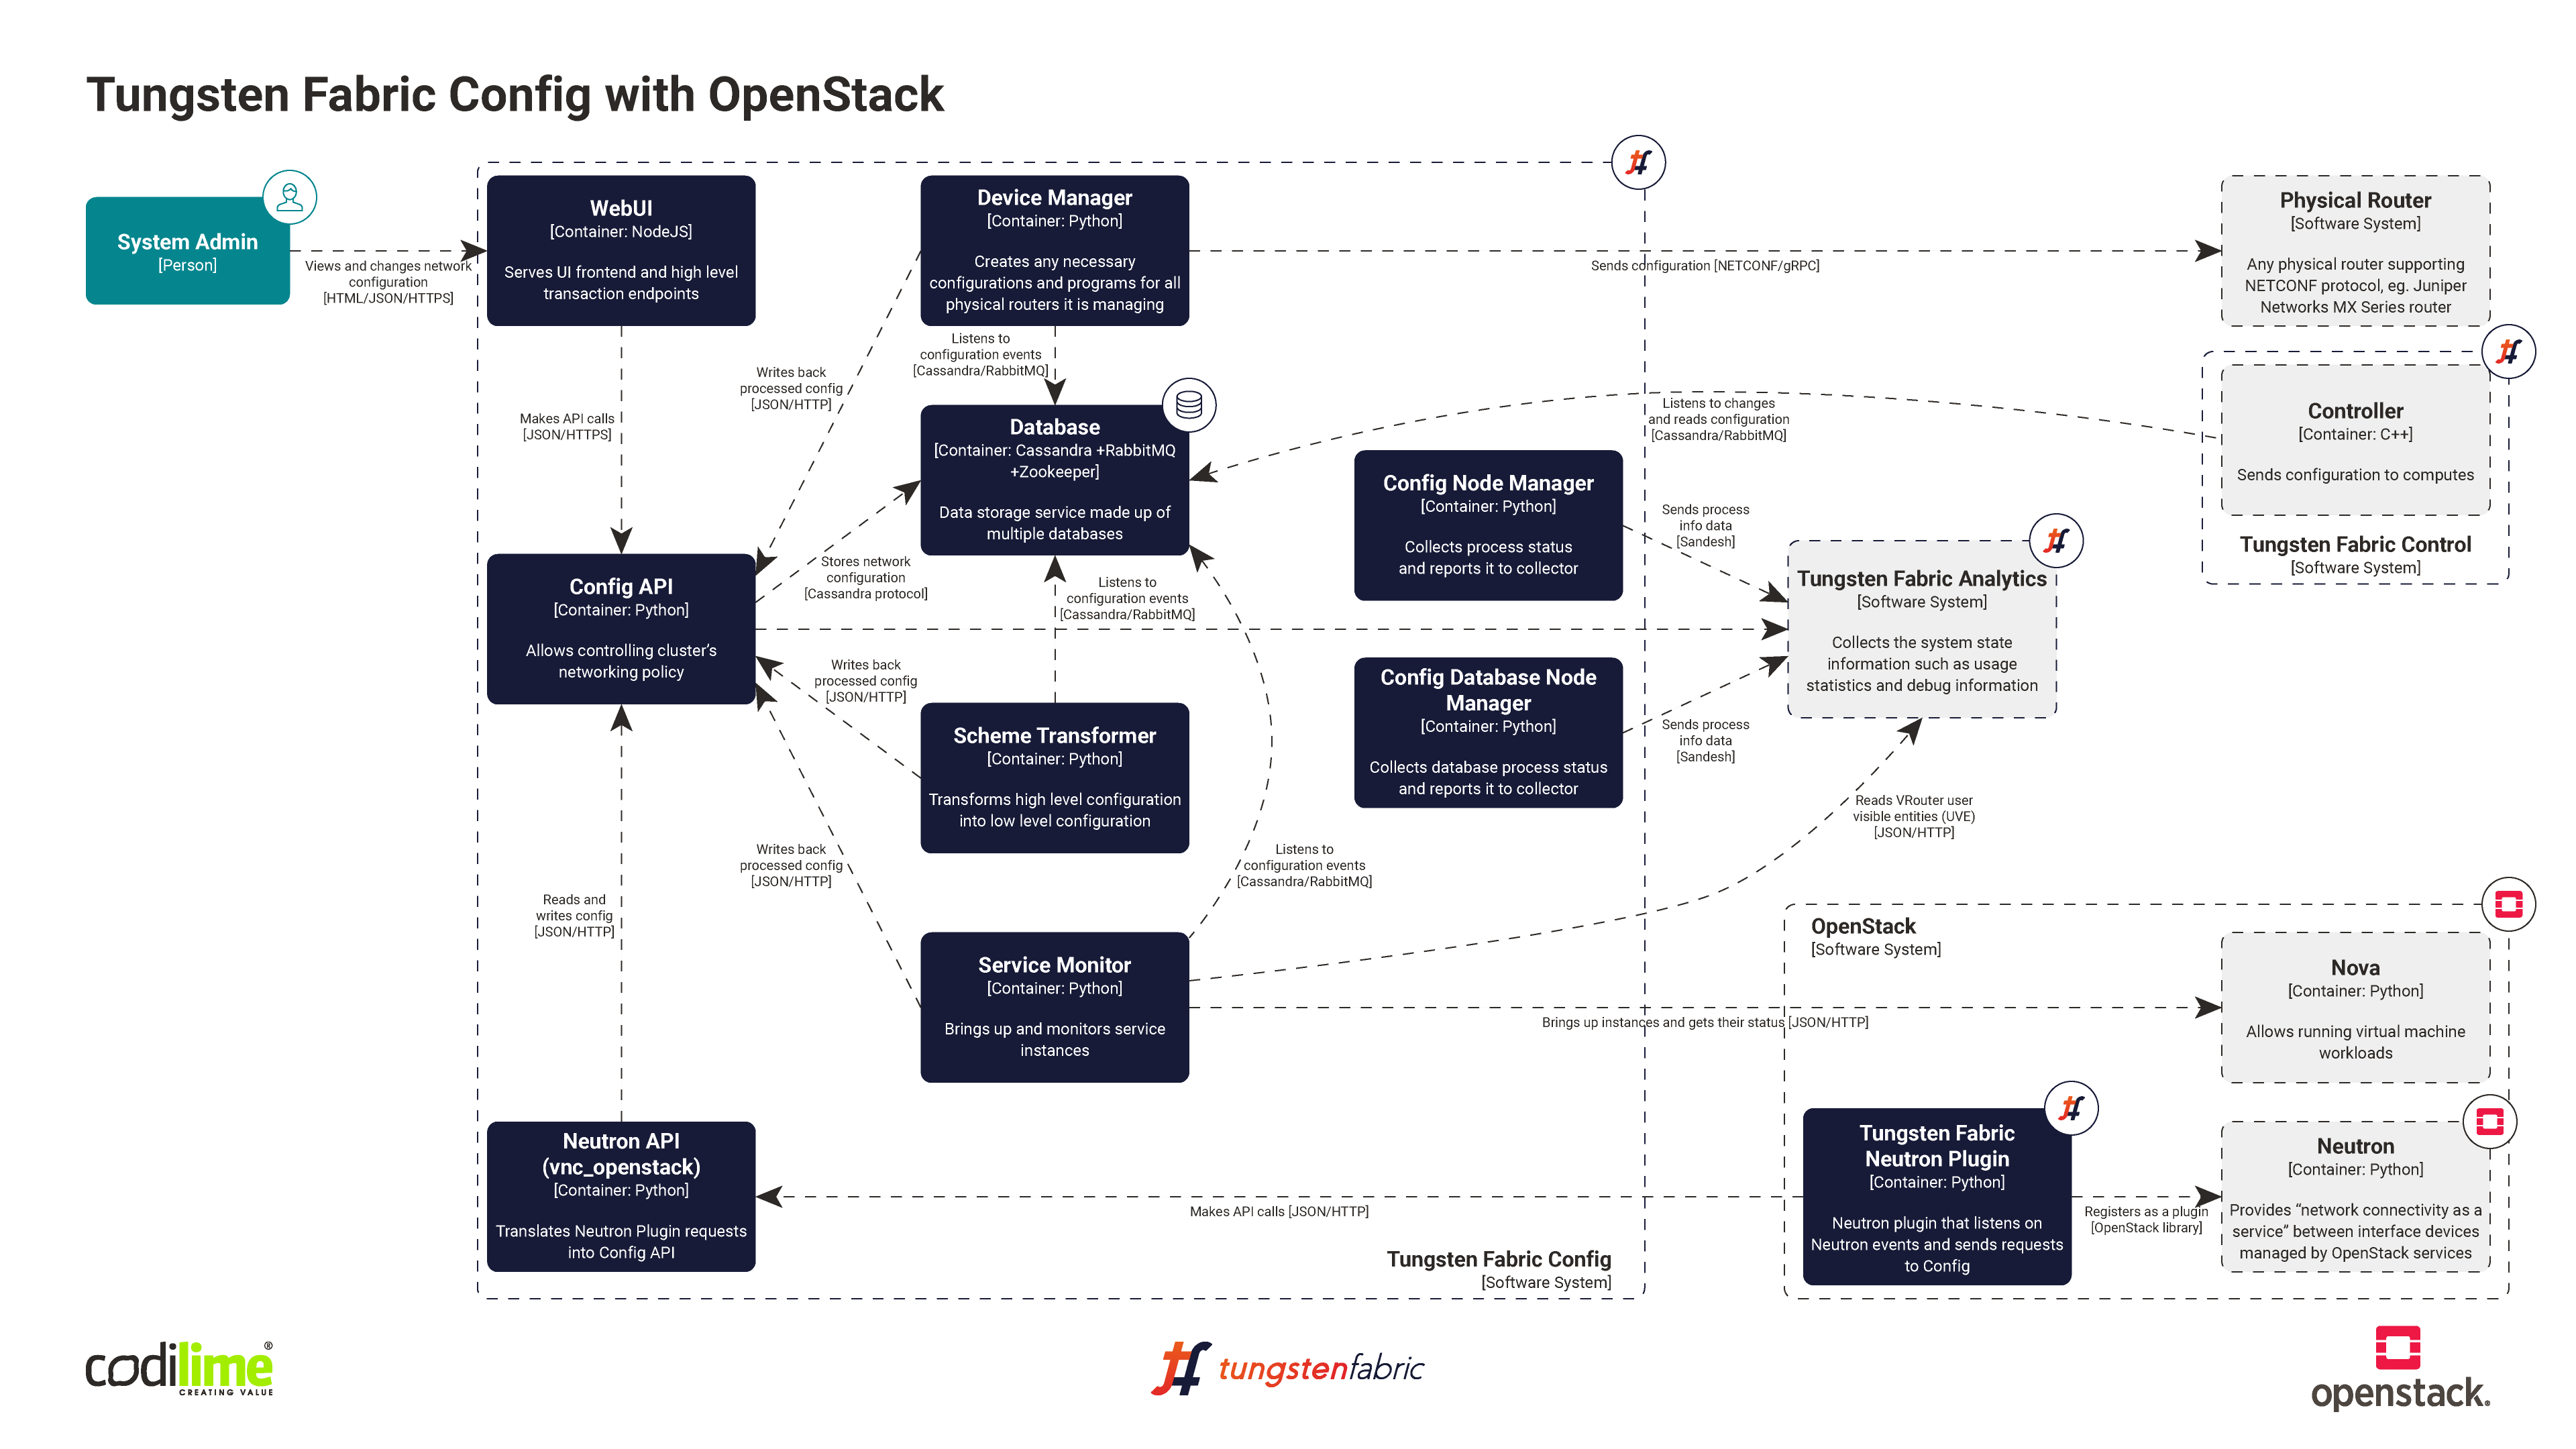 Tungsten Fabric Config with OpenStack